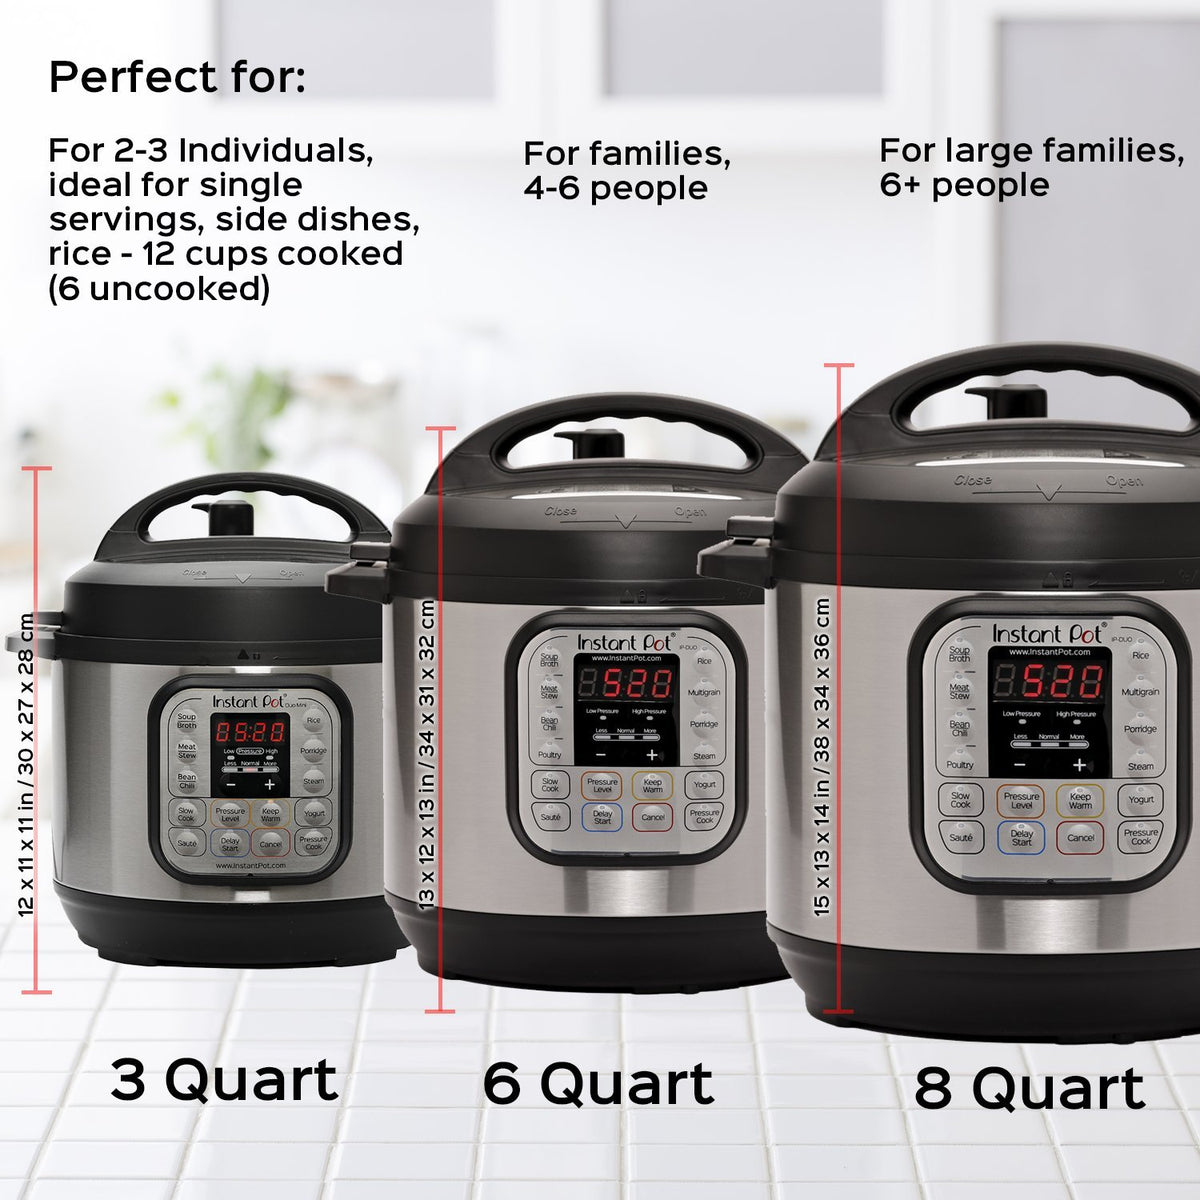 Instant Pot DUO60-7-in-1 Multi-Use Programmable Pressure Cooker Slow Cooker Rice Cooker Steamer Sauté Yogurt Maker Warmer